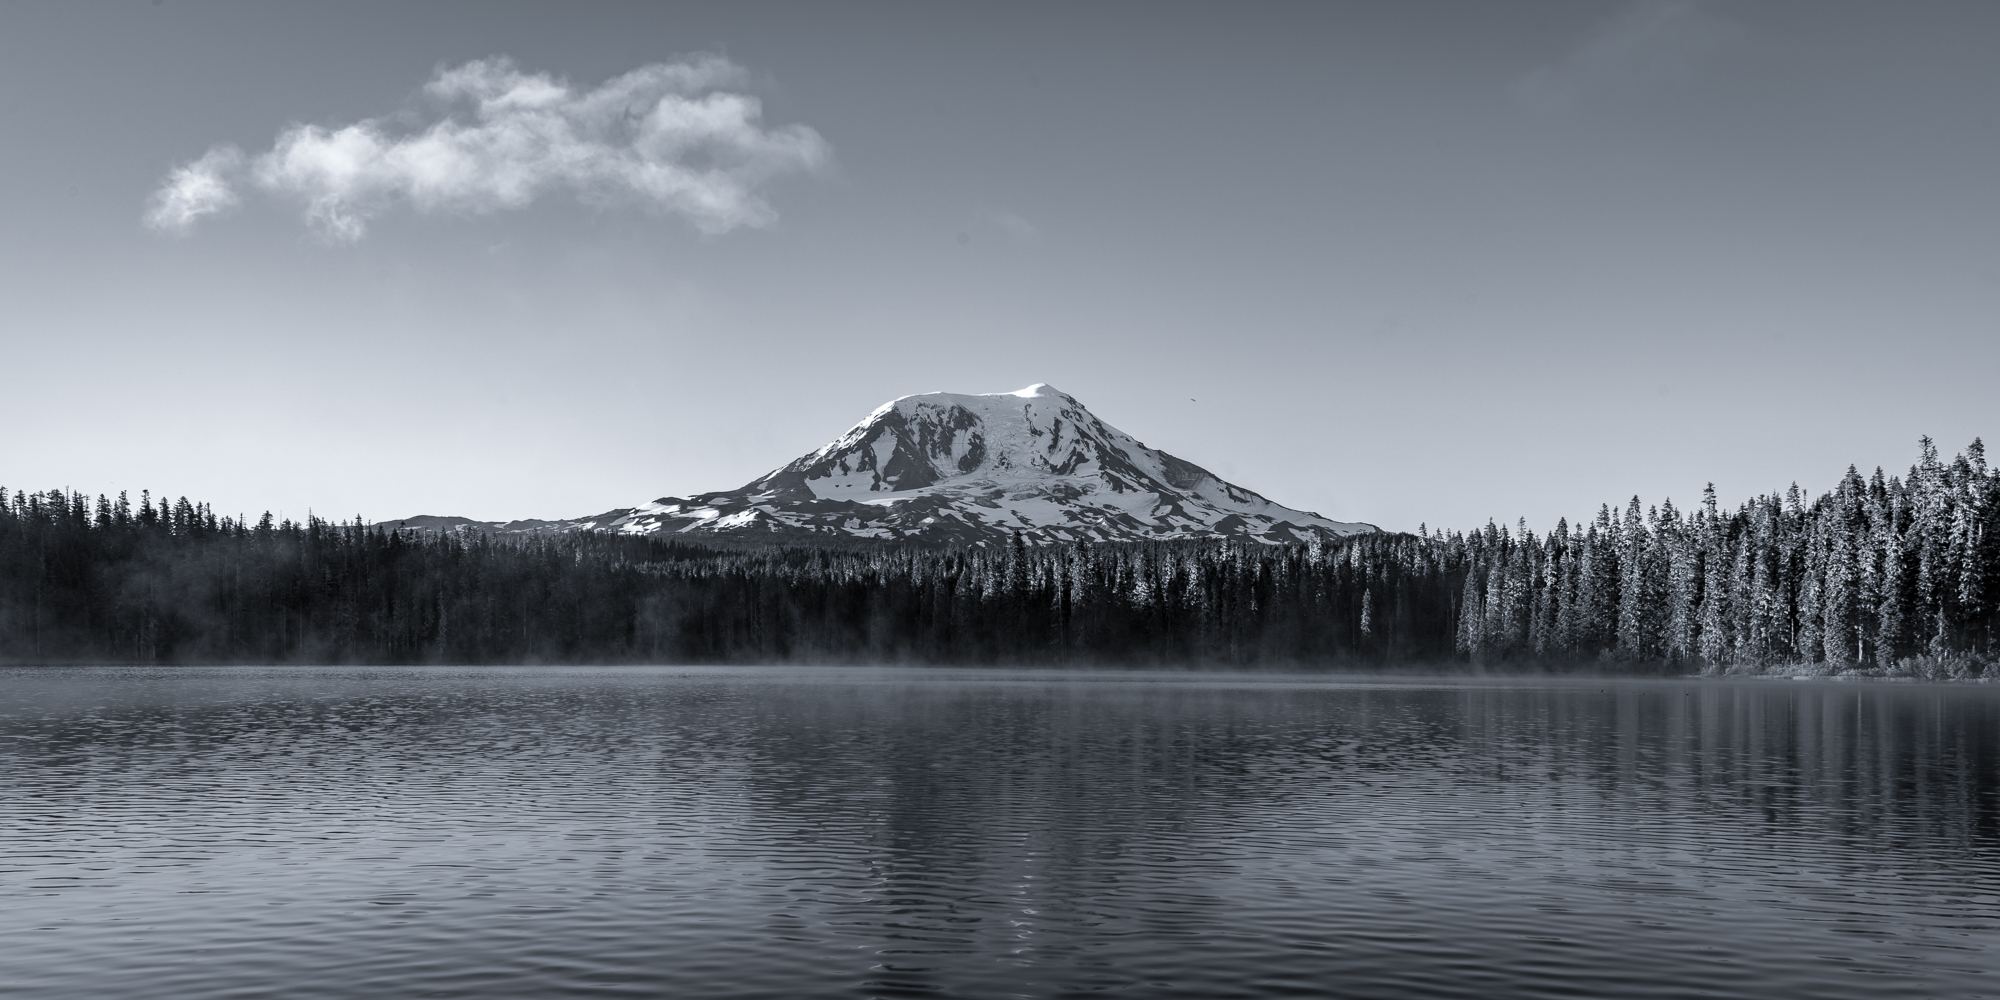 The top contender of the list of places my D810 had to see before it died.